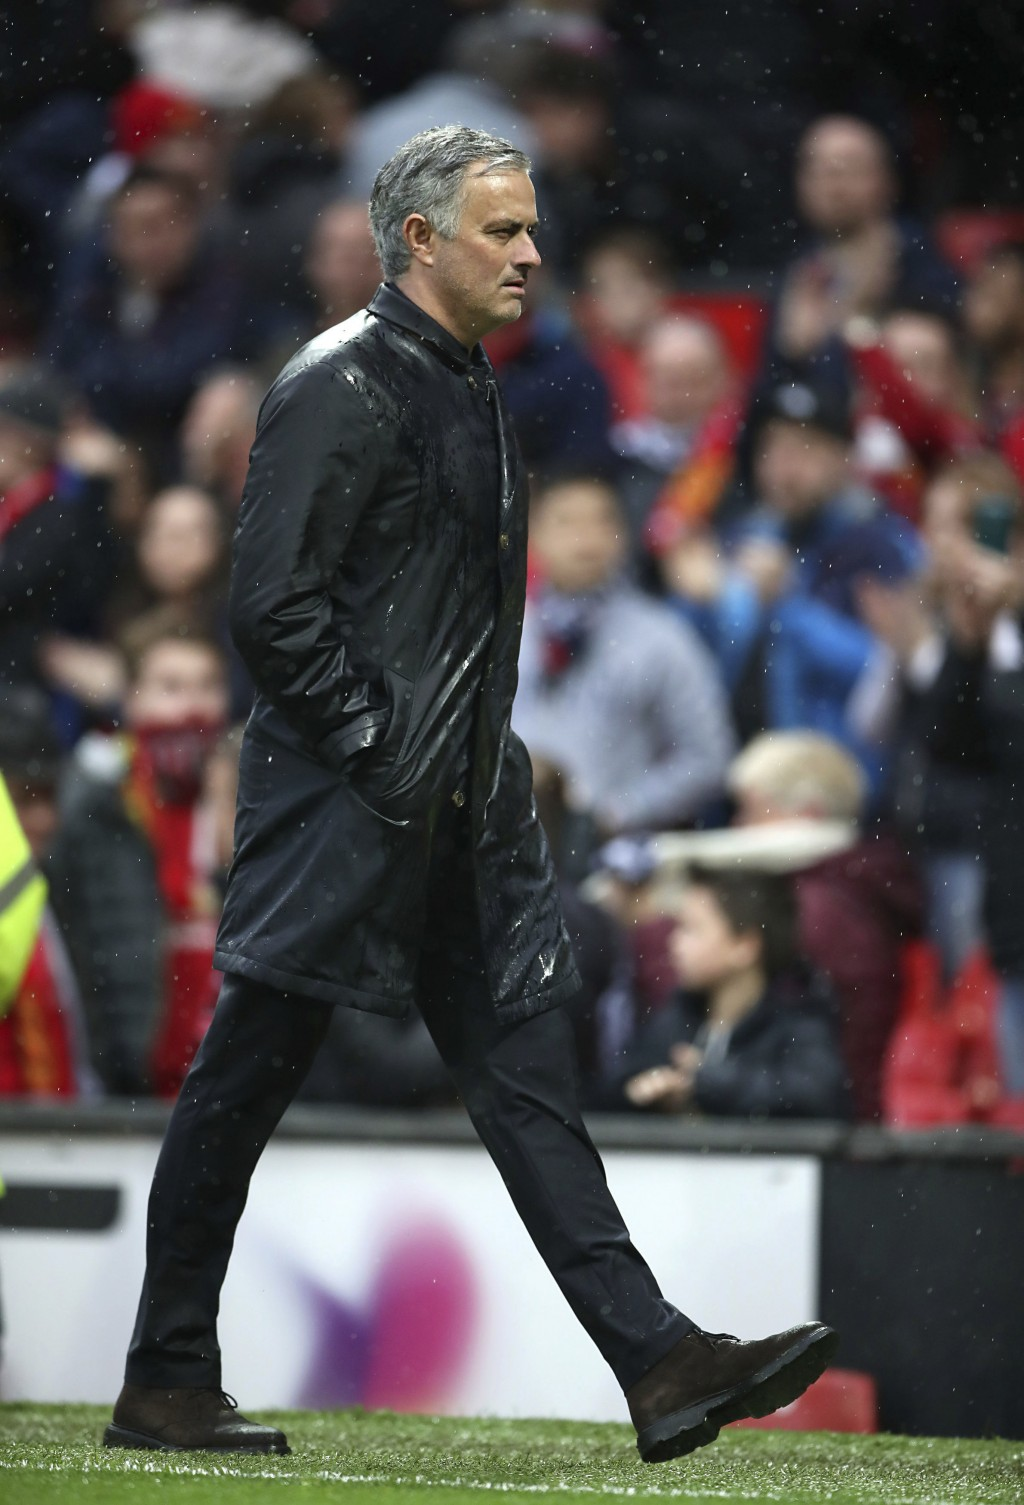 Manchester United manager Jose Mourinho leaves the pitch after the final whistle of the English Premier League soccer match against West Bromwich Albi